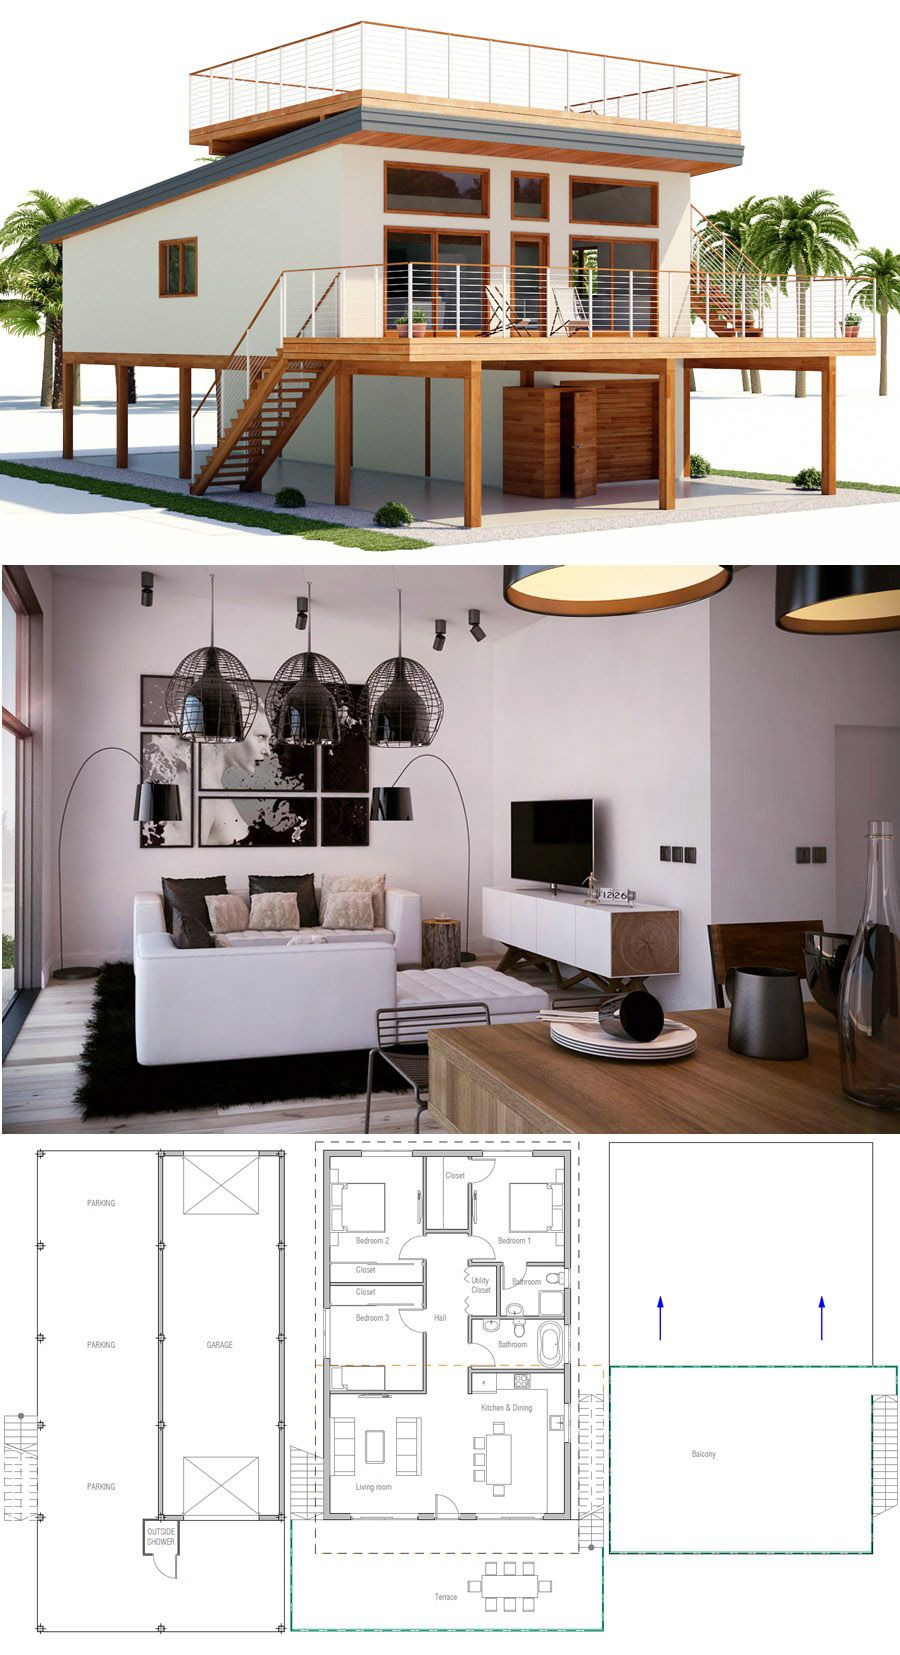 Beach House Designs and Floor Plans Beautiful Architecture Home Plans House Plans Floor Plans House